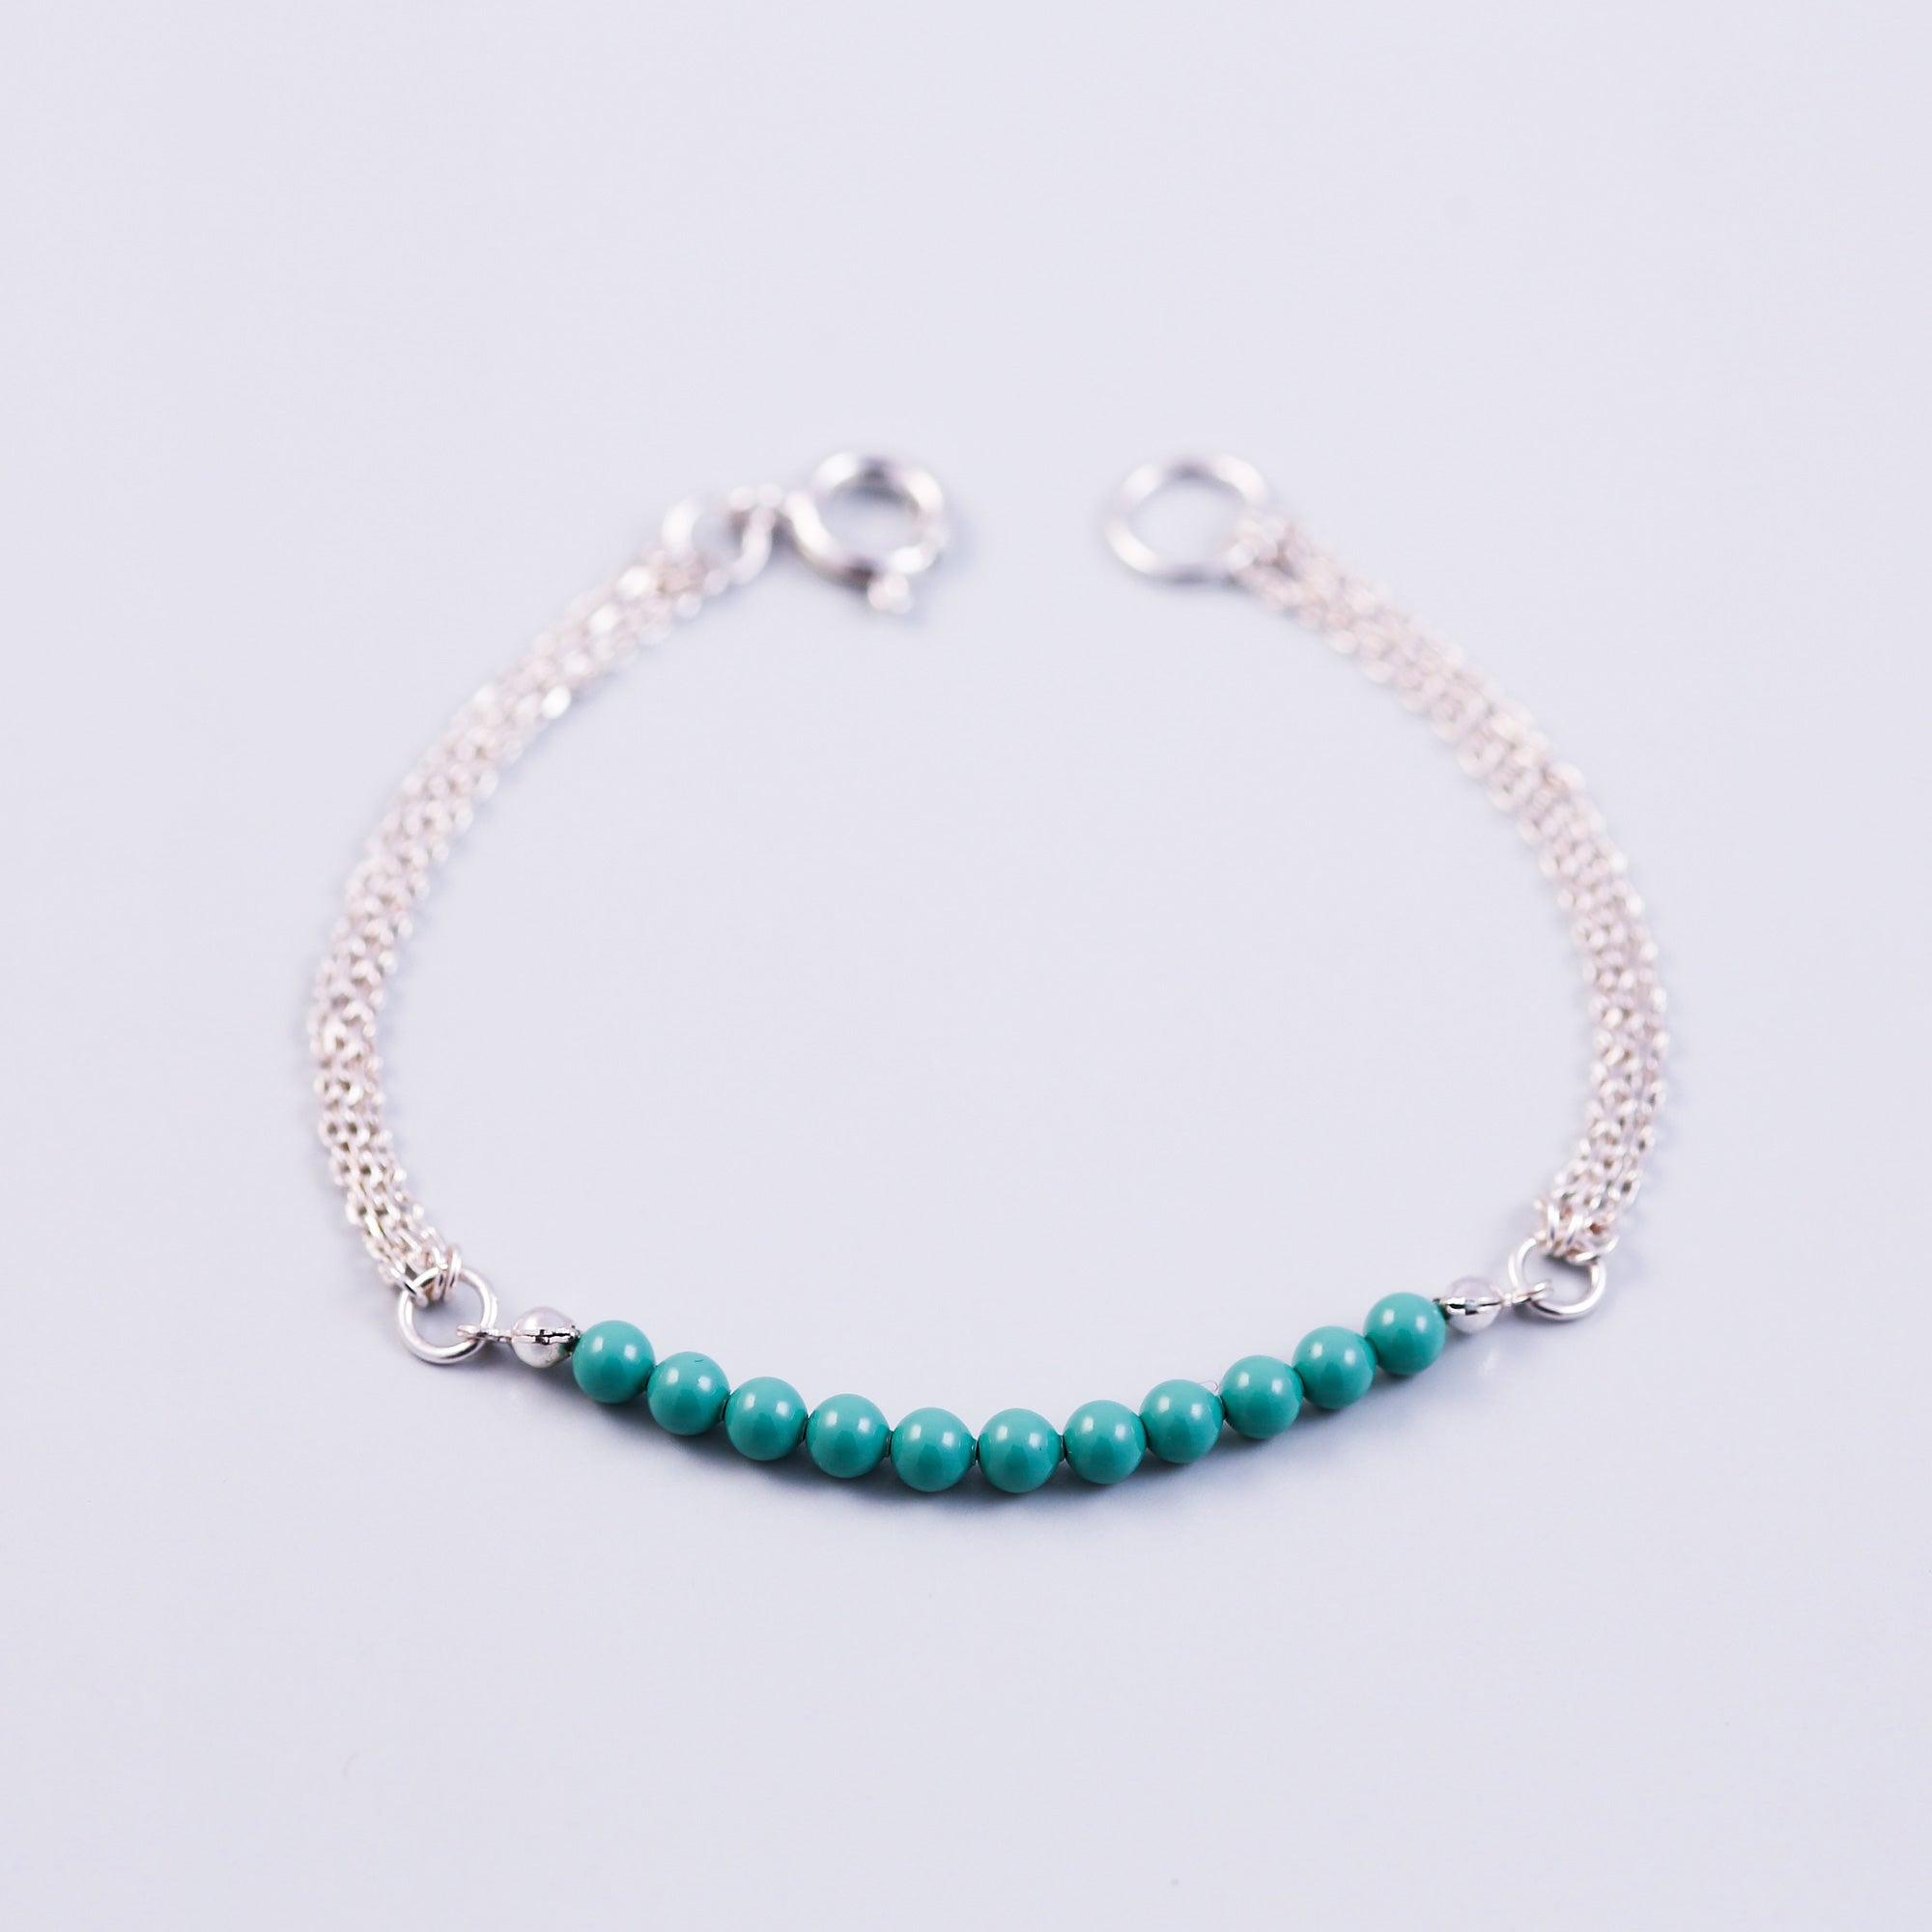 Pearl Bead Bracelet | Cute Friendship Bracelets | Friendship Jewellery | Silver & Jade